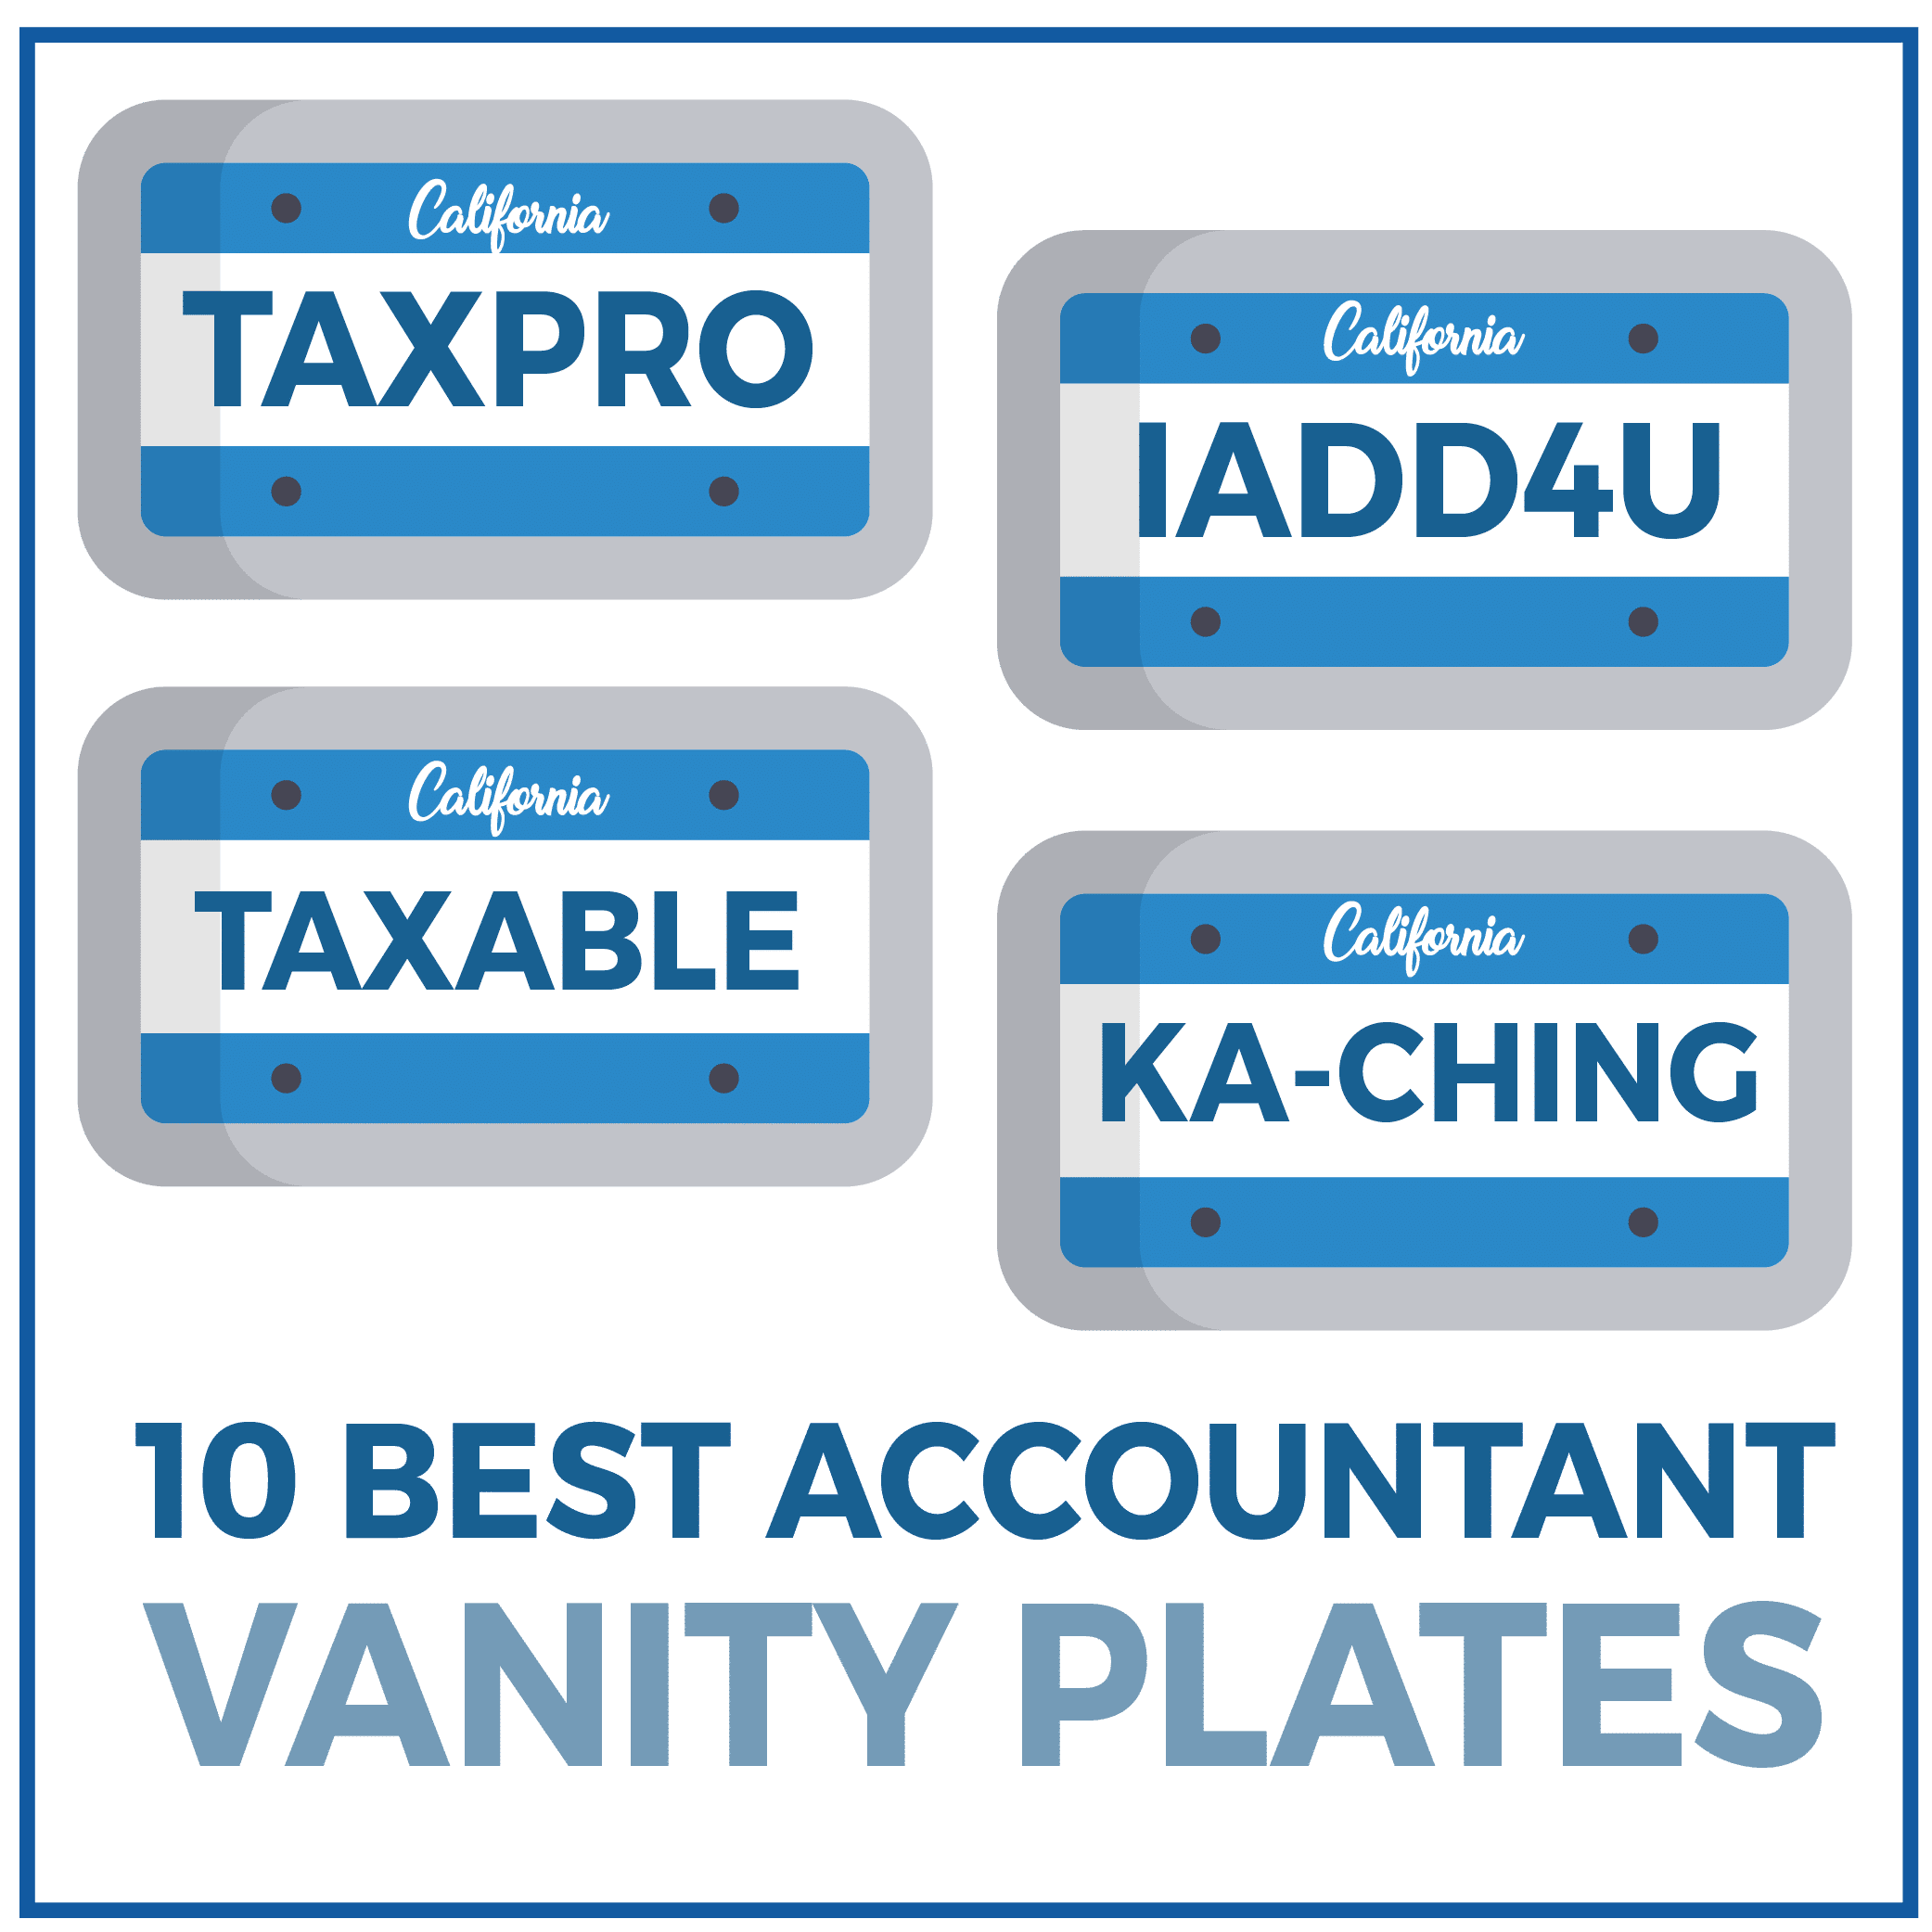 10 Best Accountant Vanity Plates